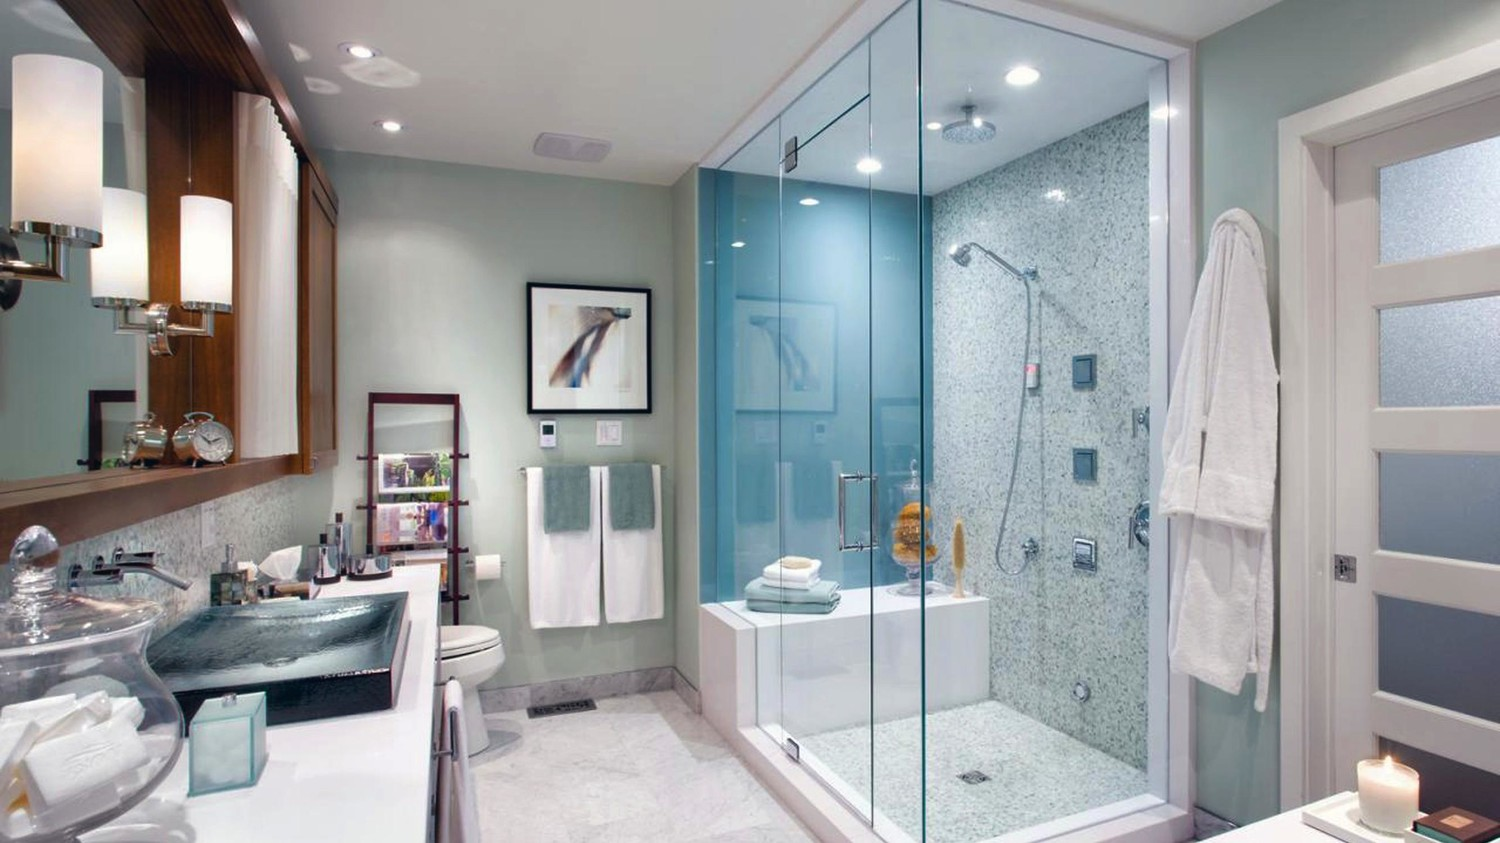 Bathroom Design Ideas Martha Stewart - Bathtub styles photos